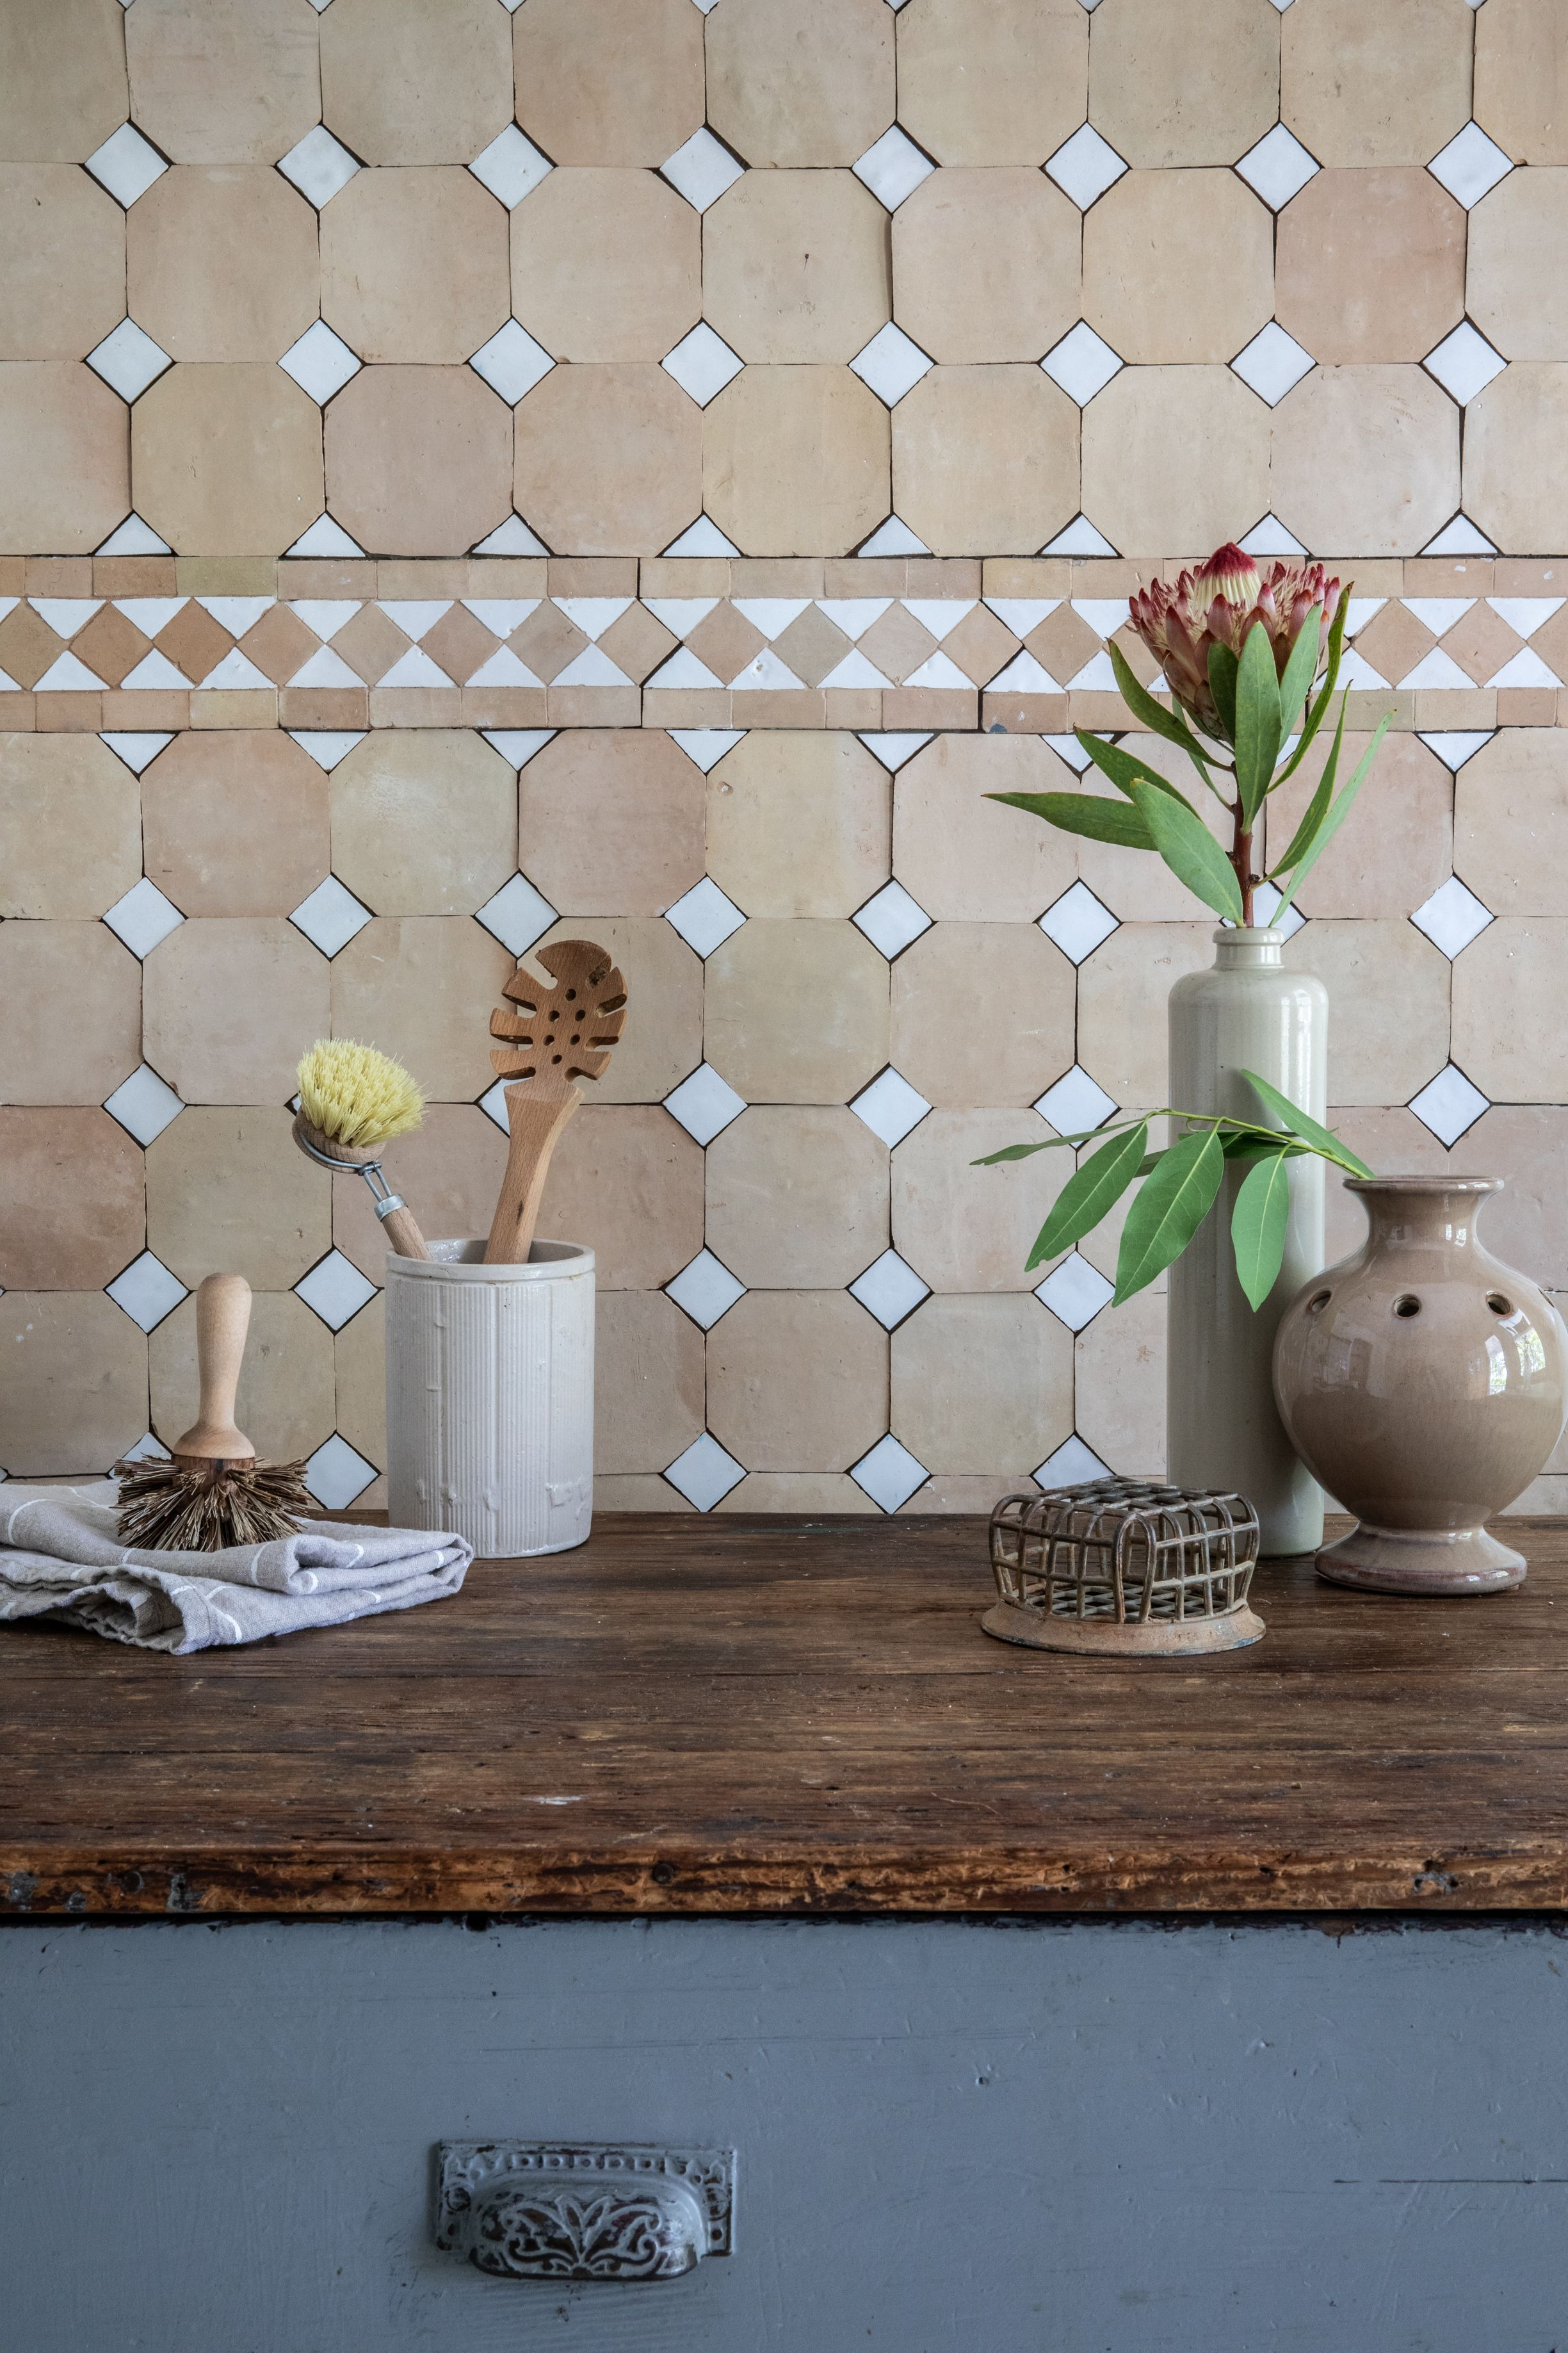 You Can Now Buy the Tile from This Insta-Famous House